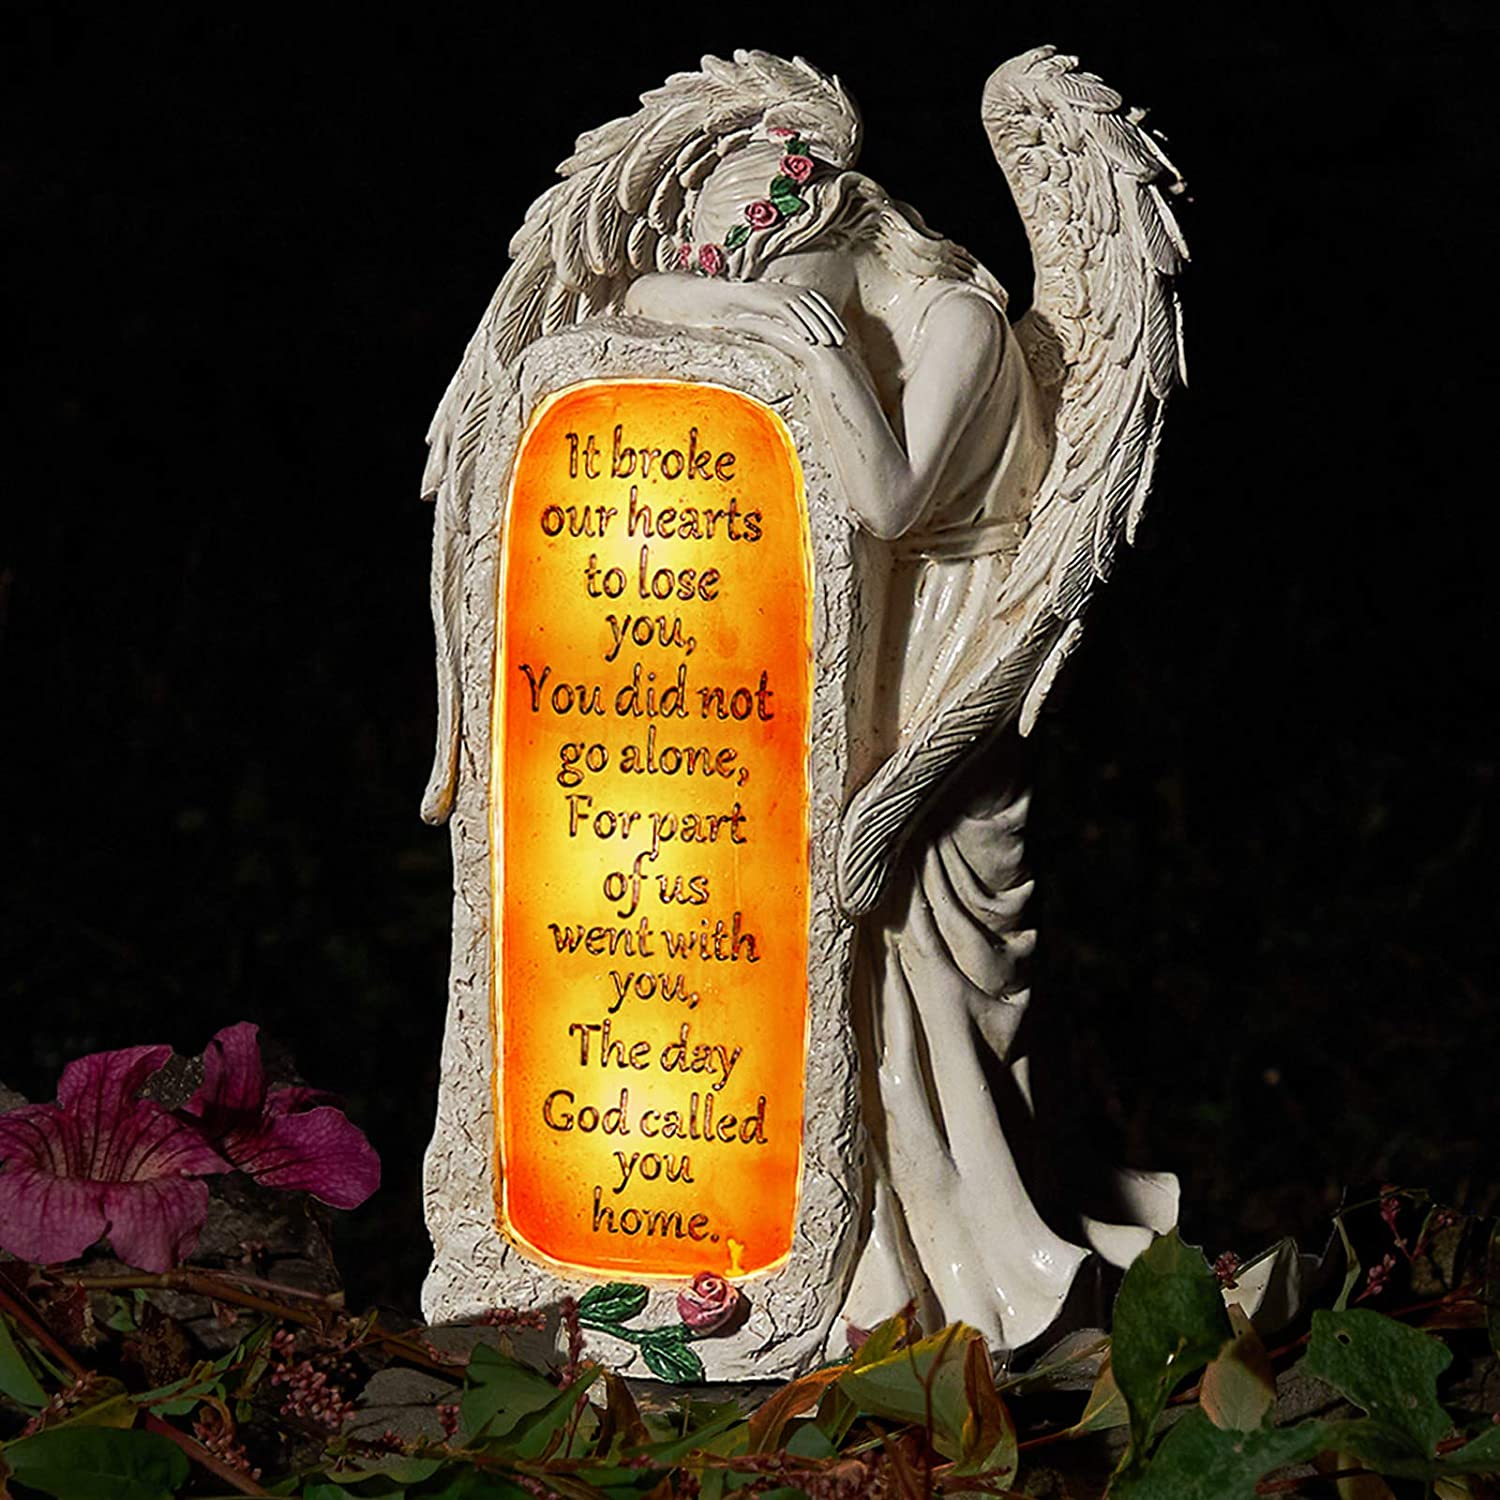 Angel Garden Statues Outdoor Decor, Solar Angel Figurines Lights for Garden Decoration Yard Art Memorial Gifts for Loss of Loved One